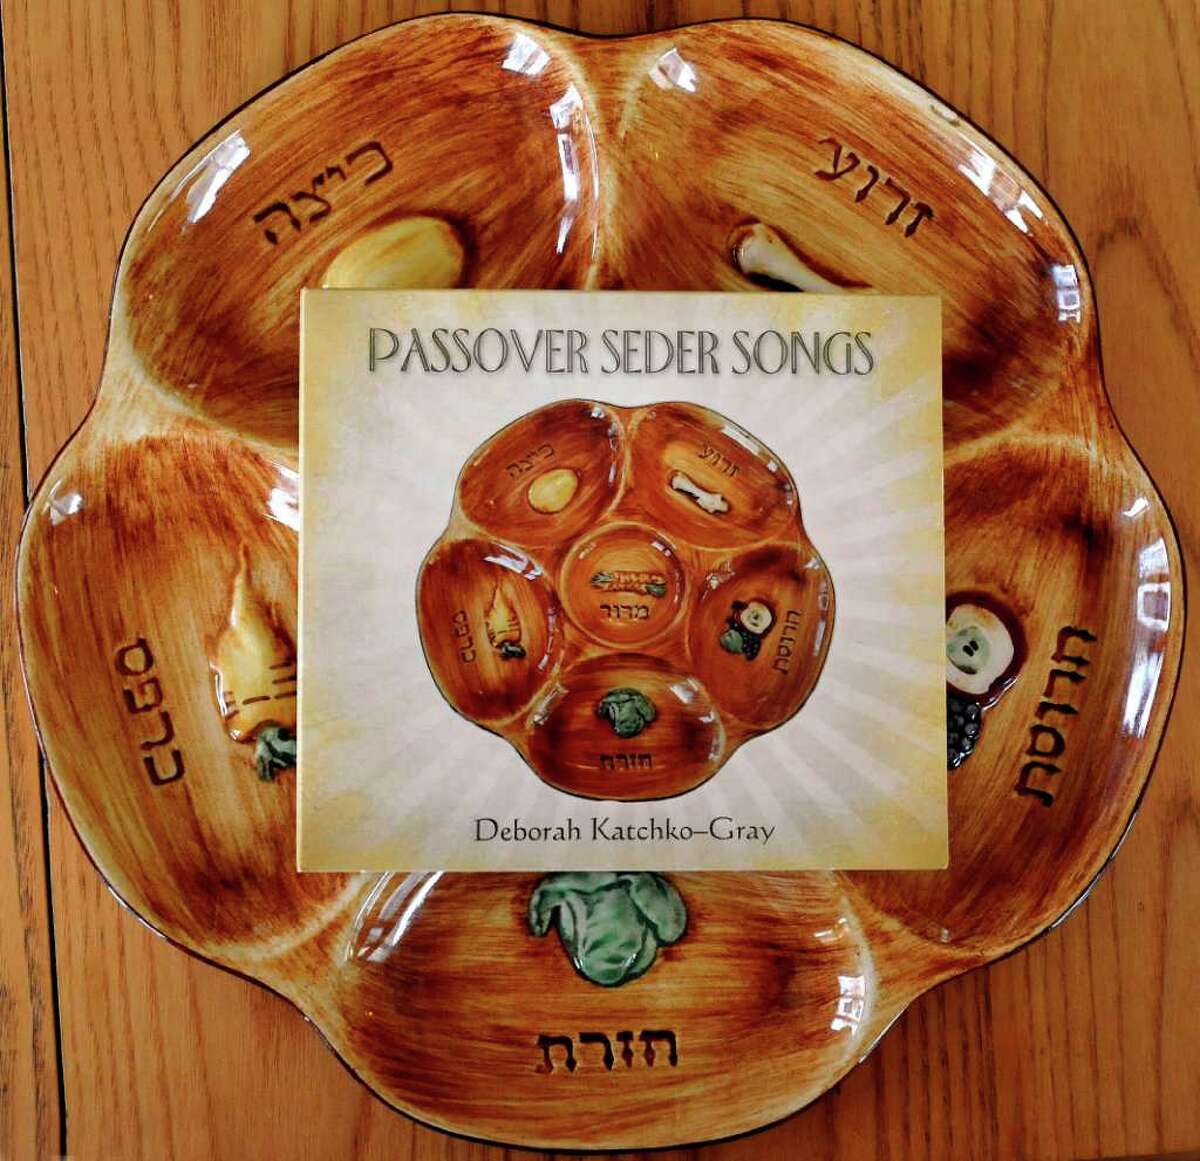 Cantor Deborah Katchko-Gray's CD of Passover seder songs rests on a seder plate in her Ridgefield home Friday, March 23, 2012.